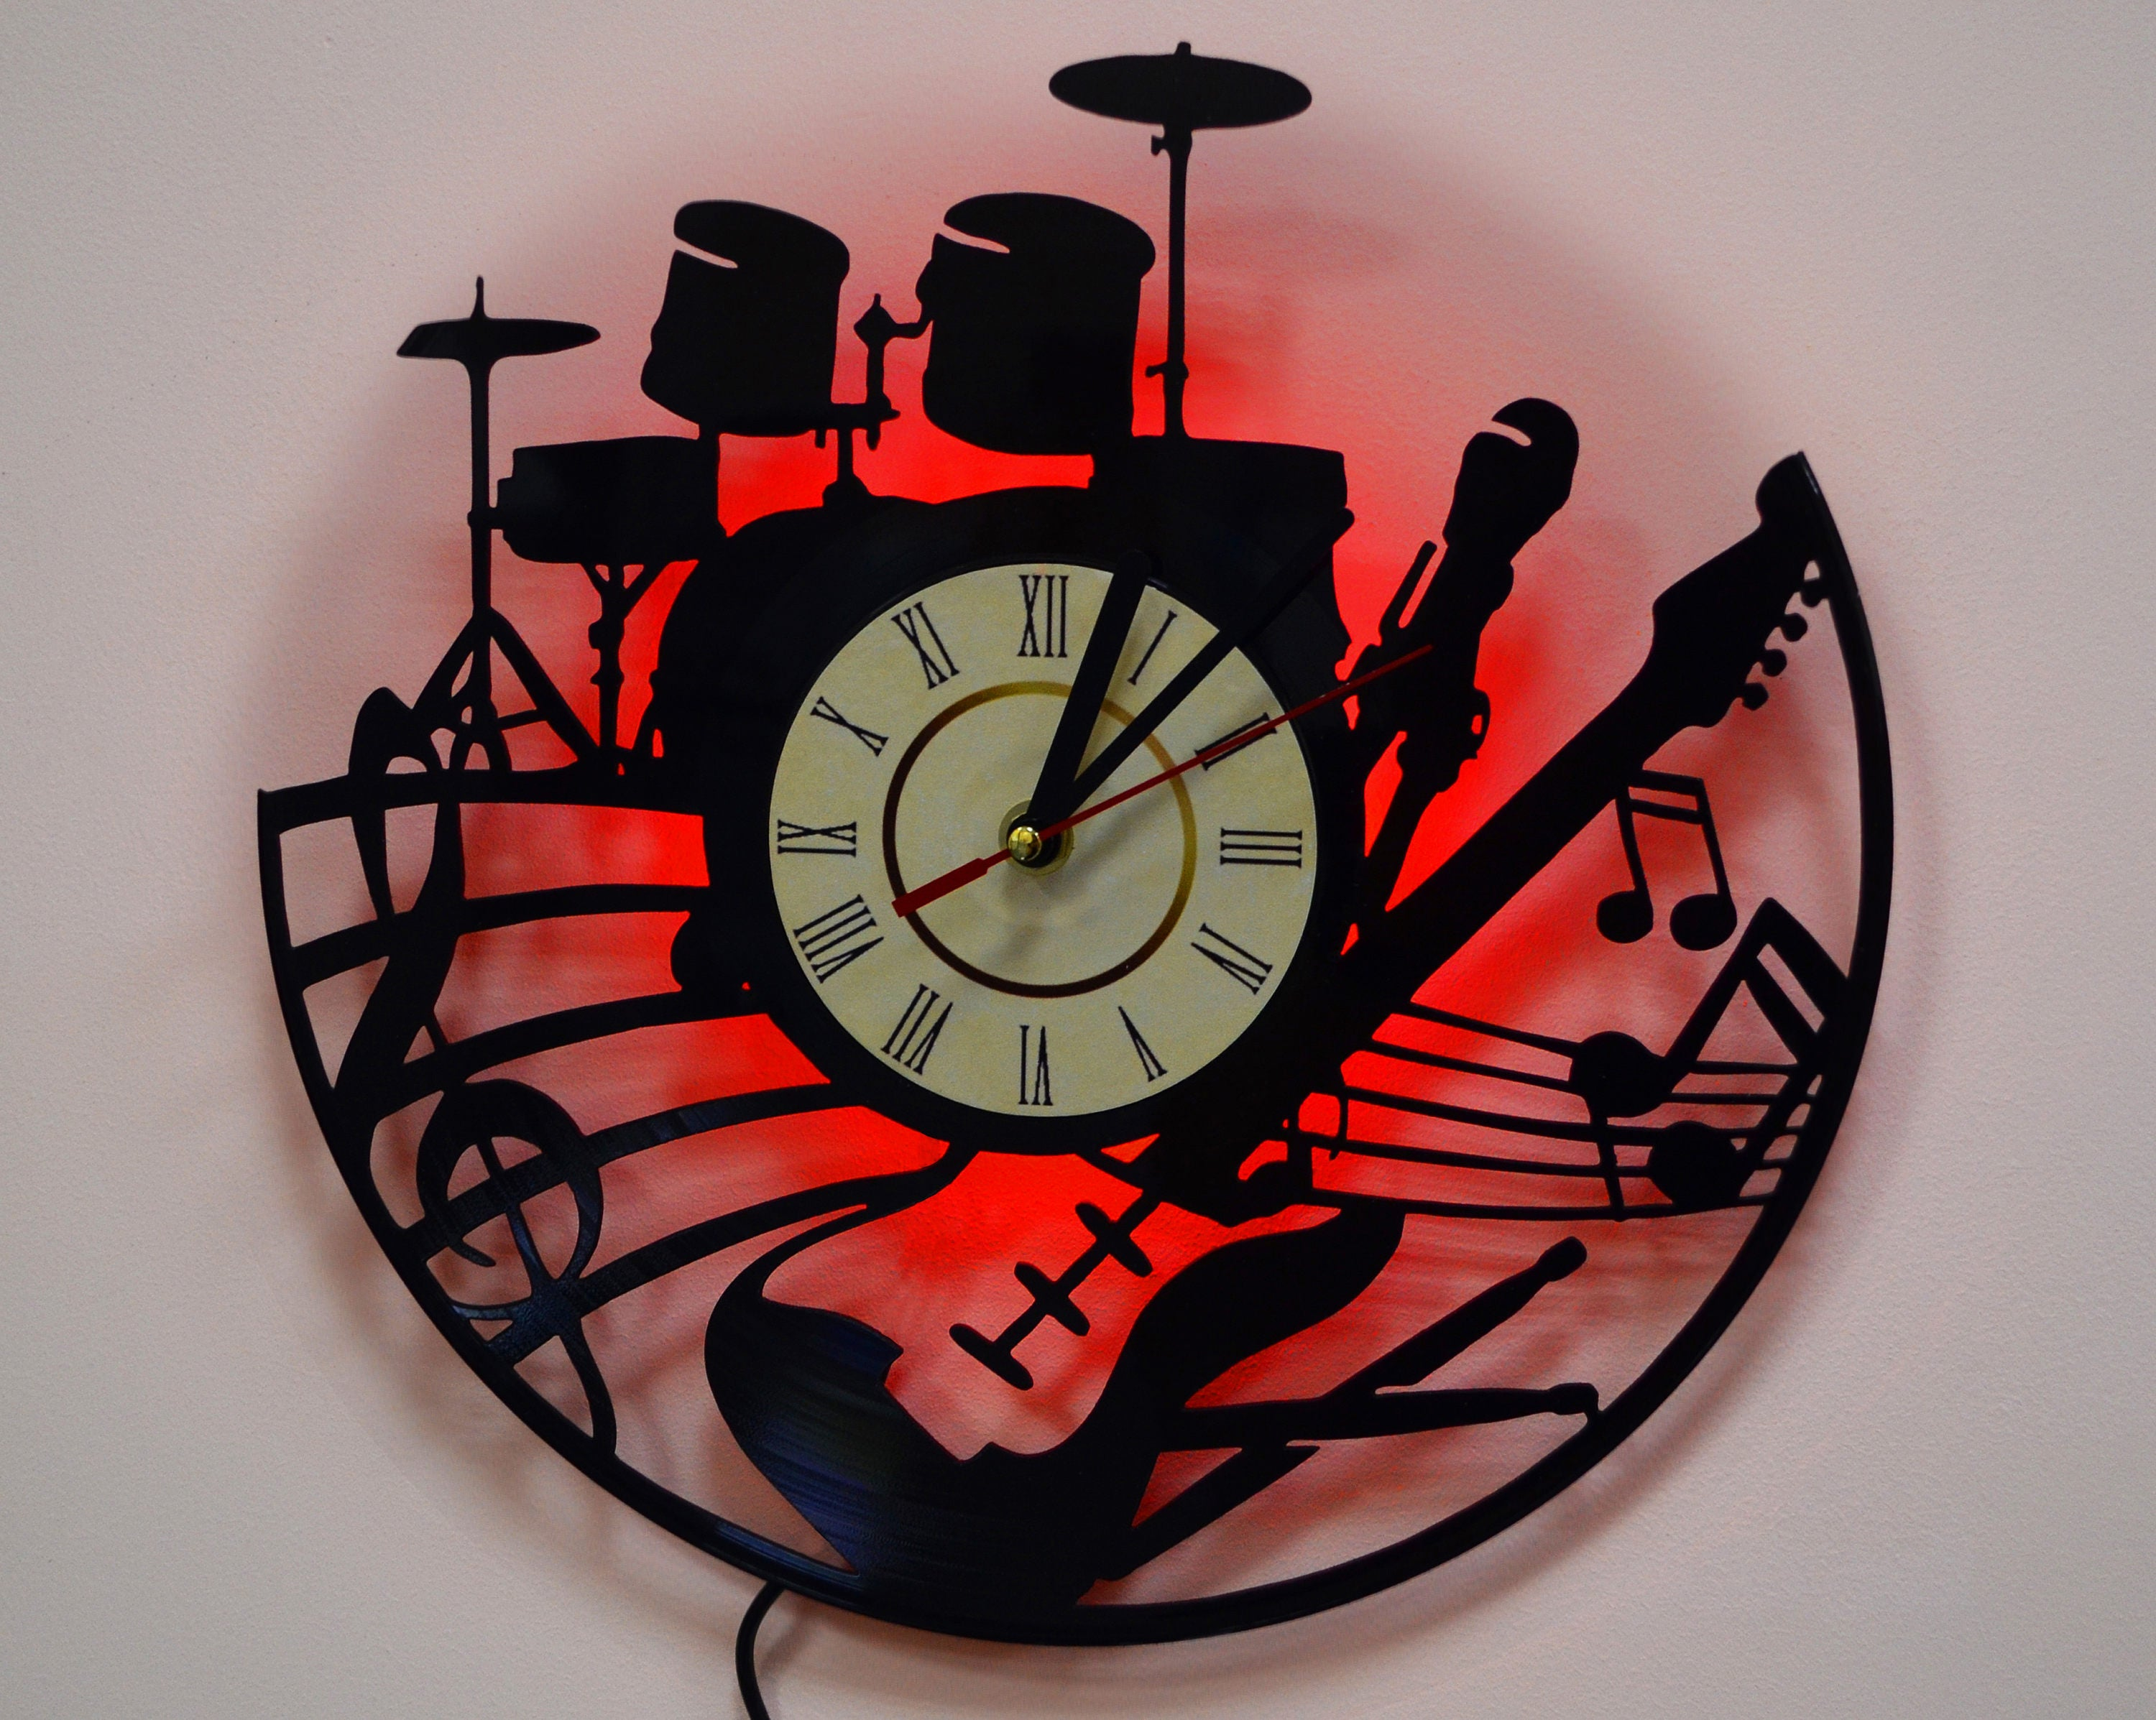 Guitar and drum led lighting wall clock vinyl record details night light function vintage wall clock amipublicfo Gallery